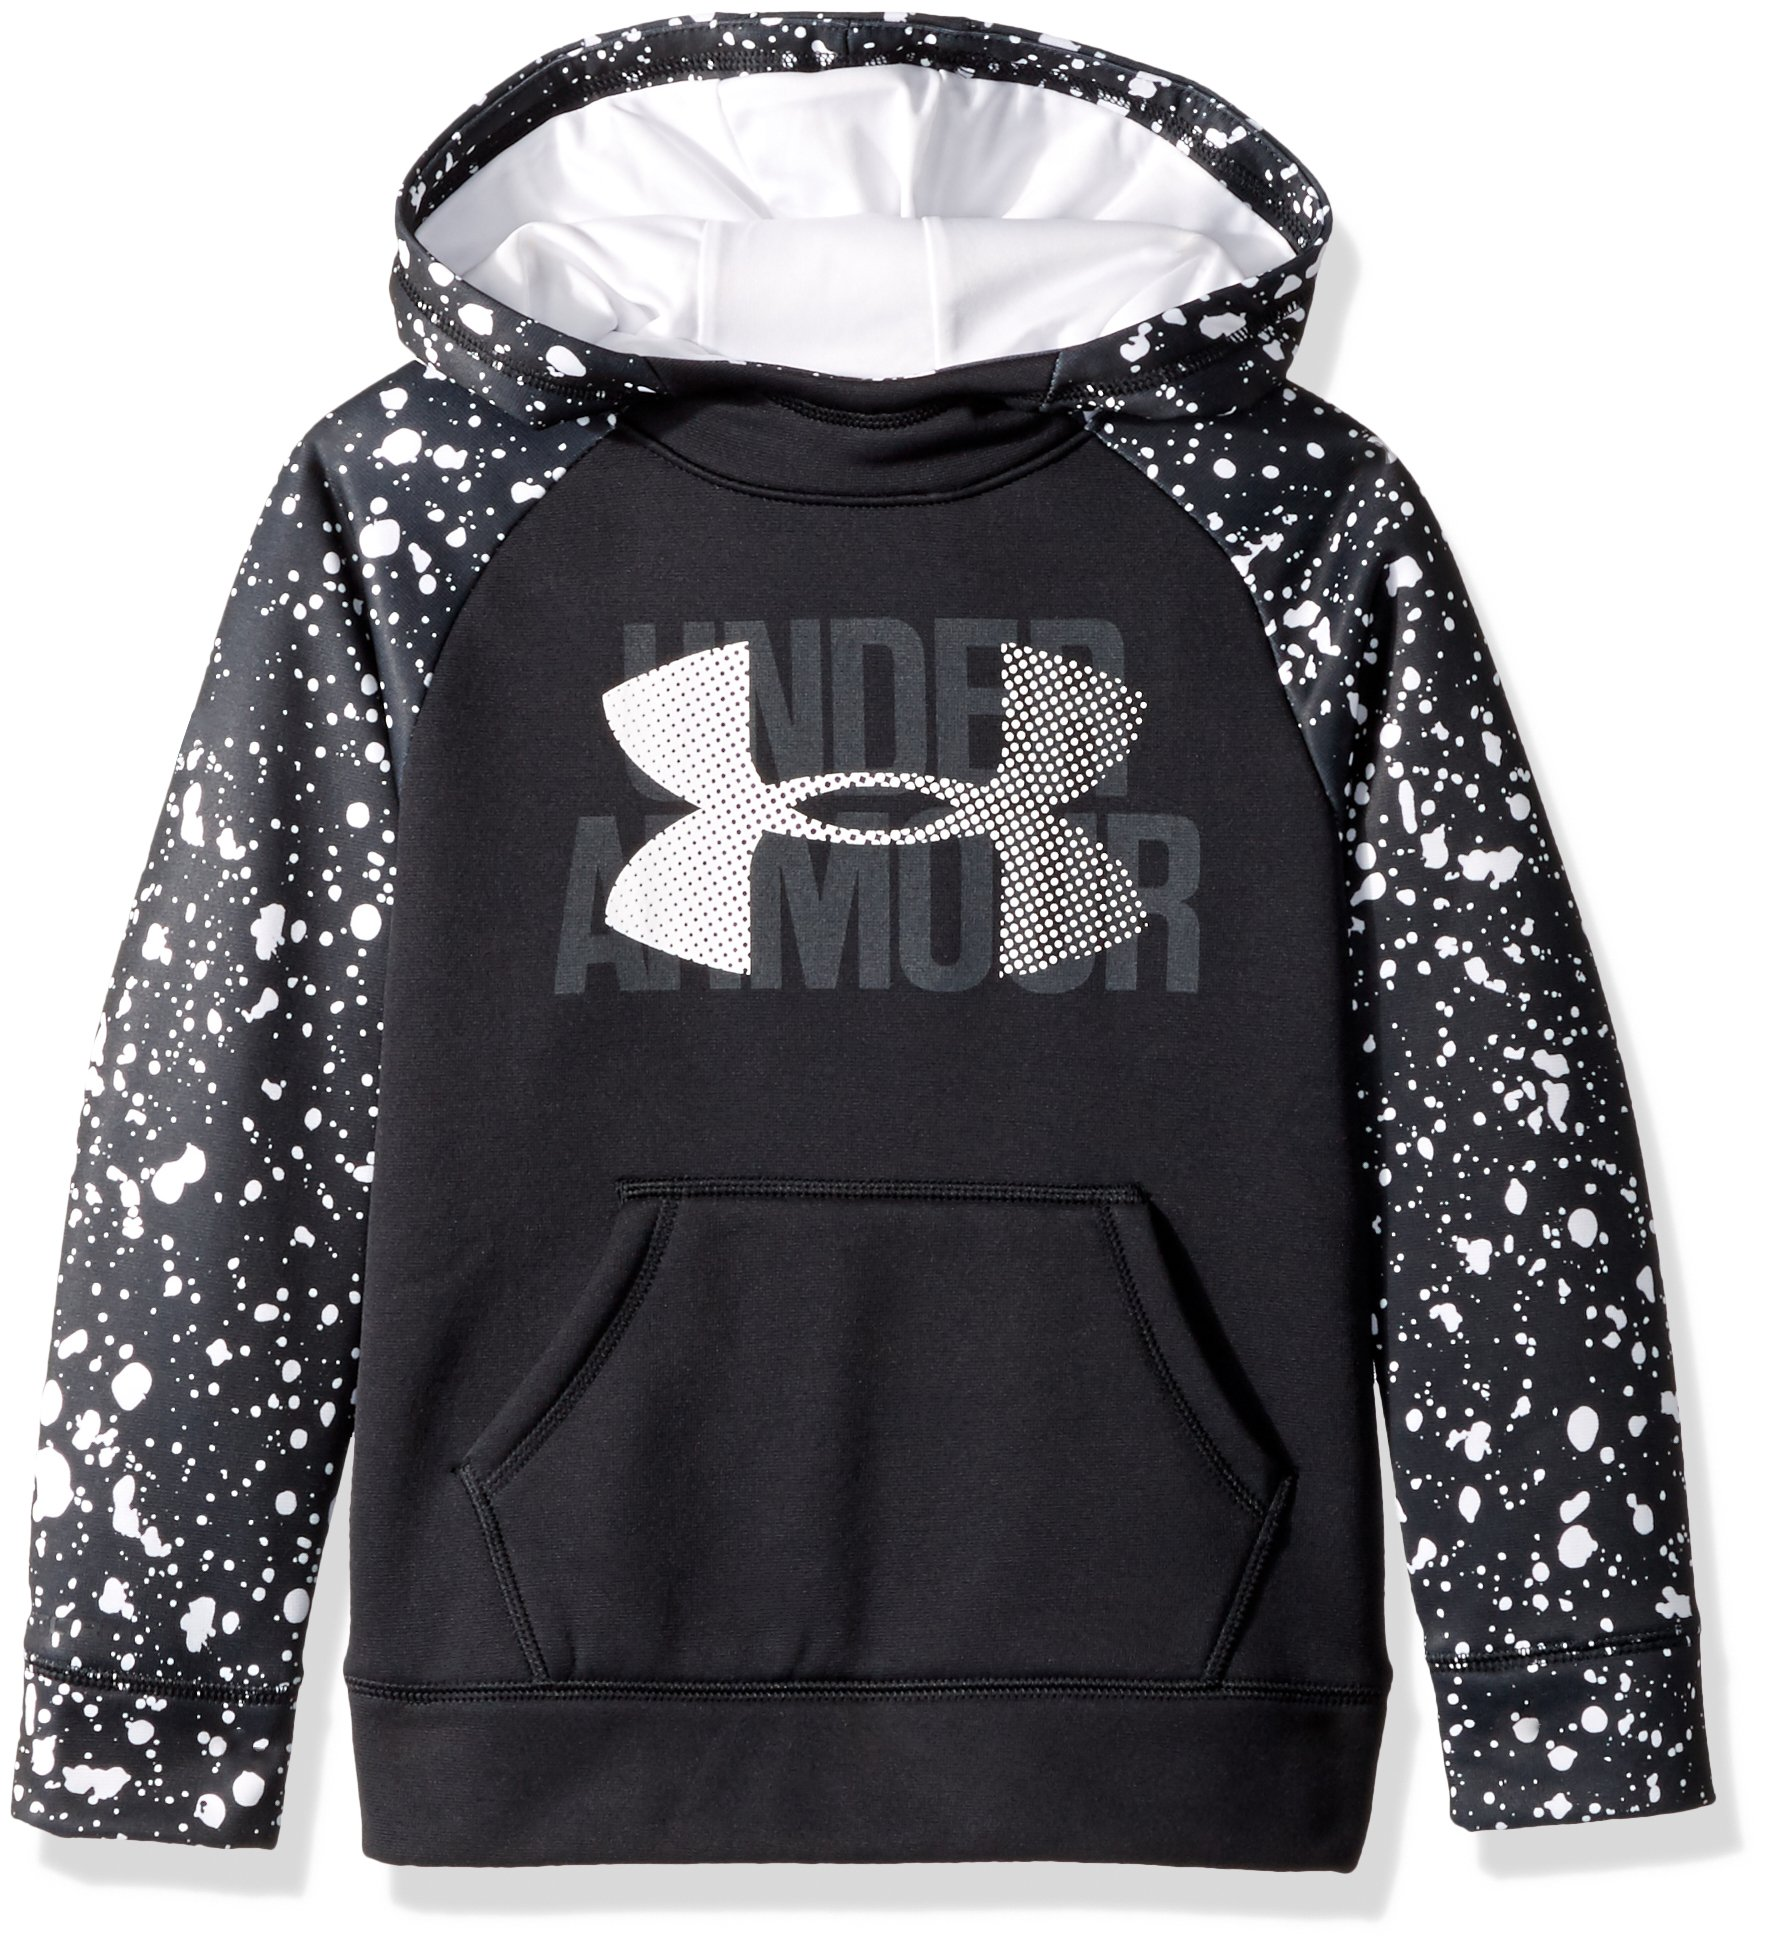 Under Armour Girls' Armour Fleece Big Logo Printed Hoodie, Black (002)/White, Youth X-Small by Under Armour